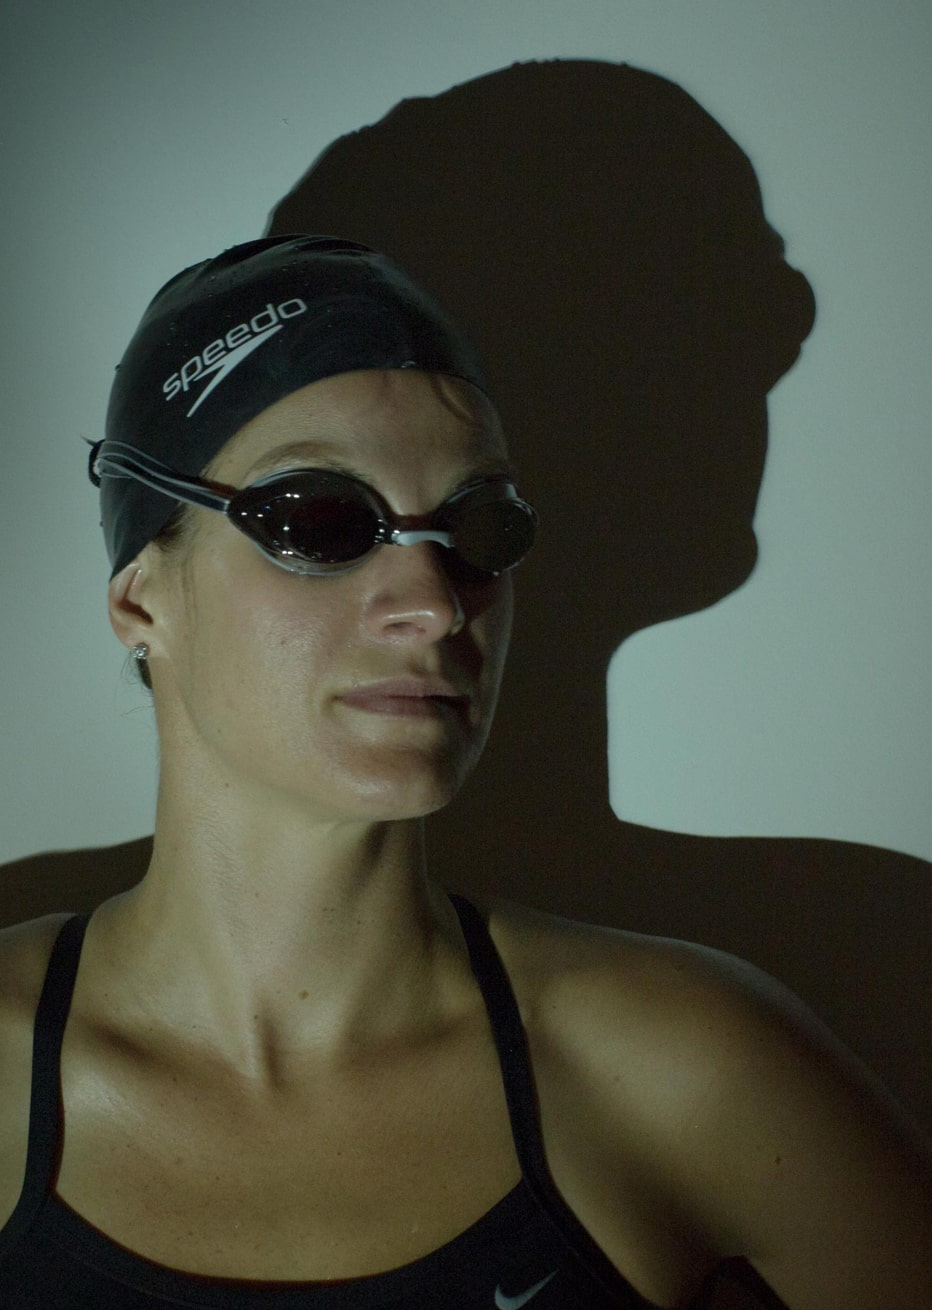 magda portrait with swim cap and goggles